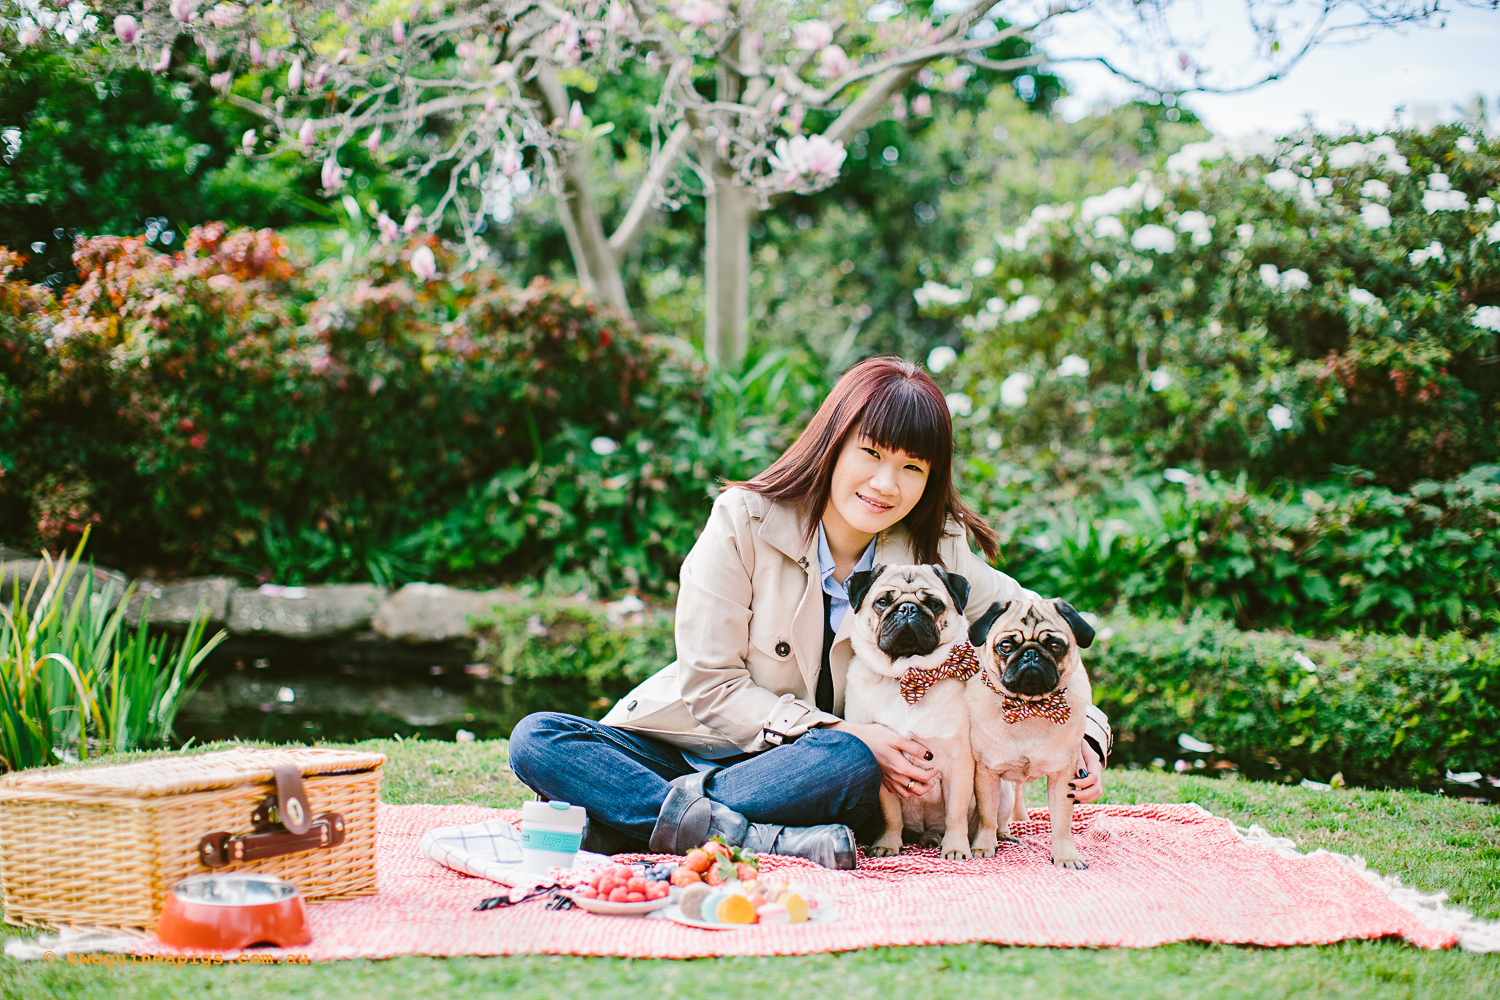 twoguineapigs_pet_photography_oh_jaffa_picnic_pugs_rodger_1500-10.jpg